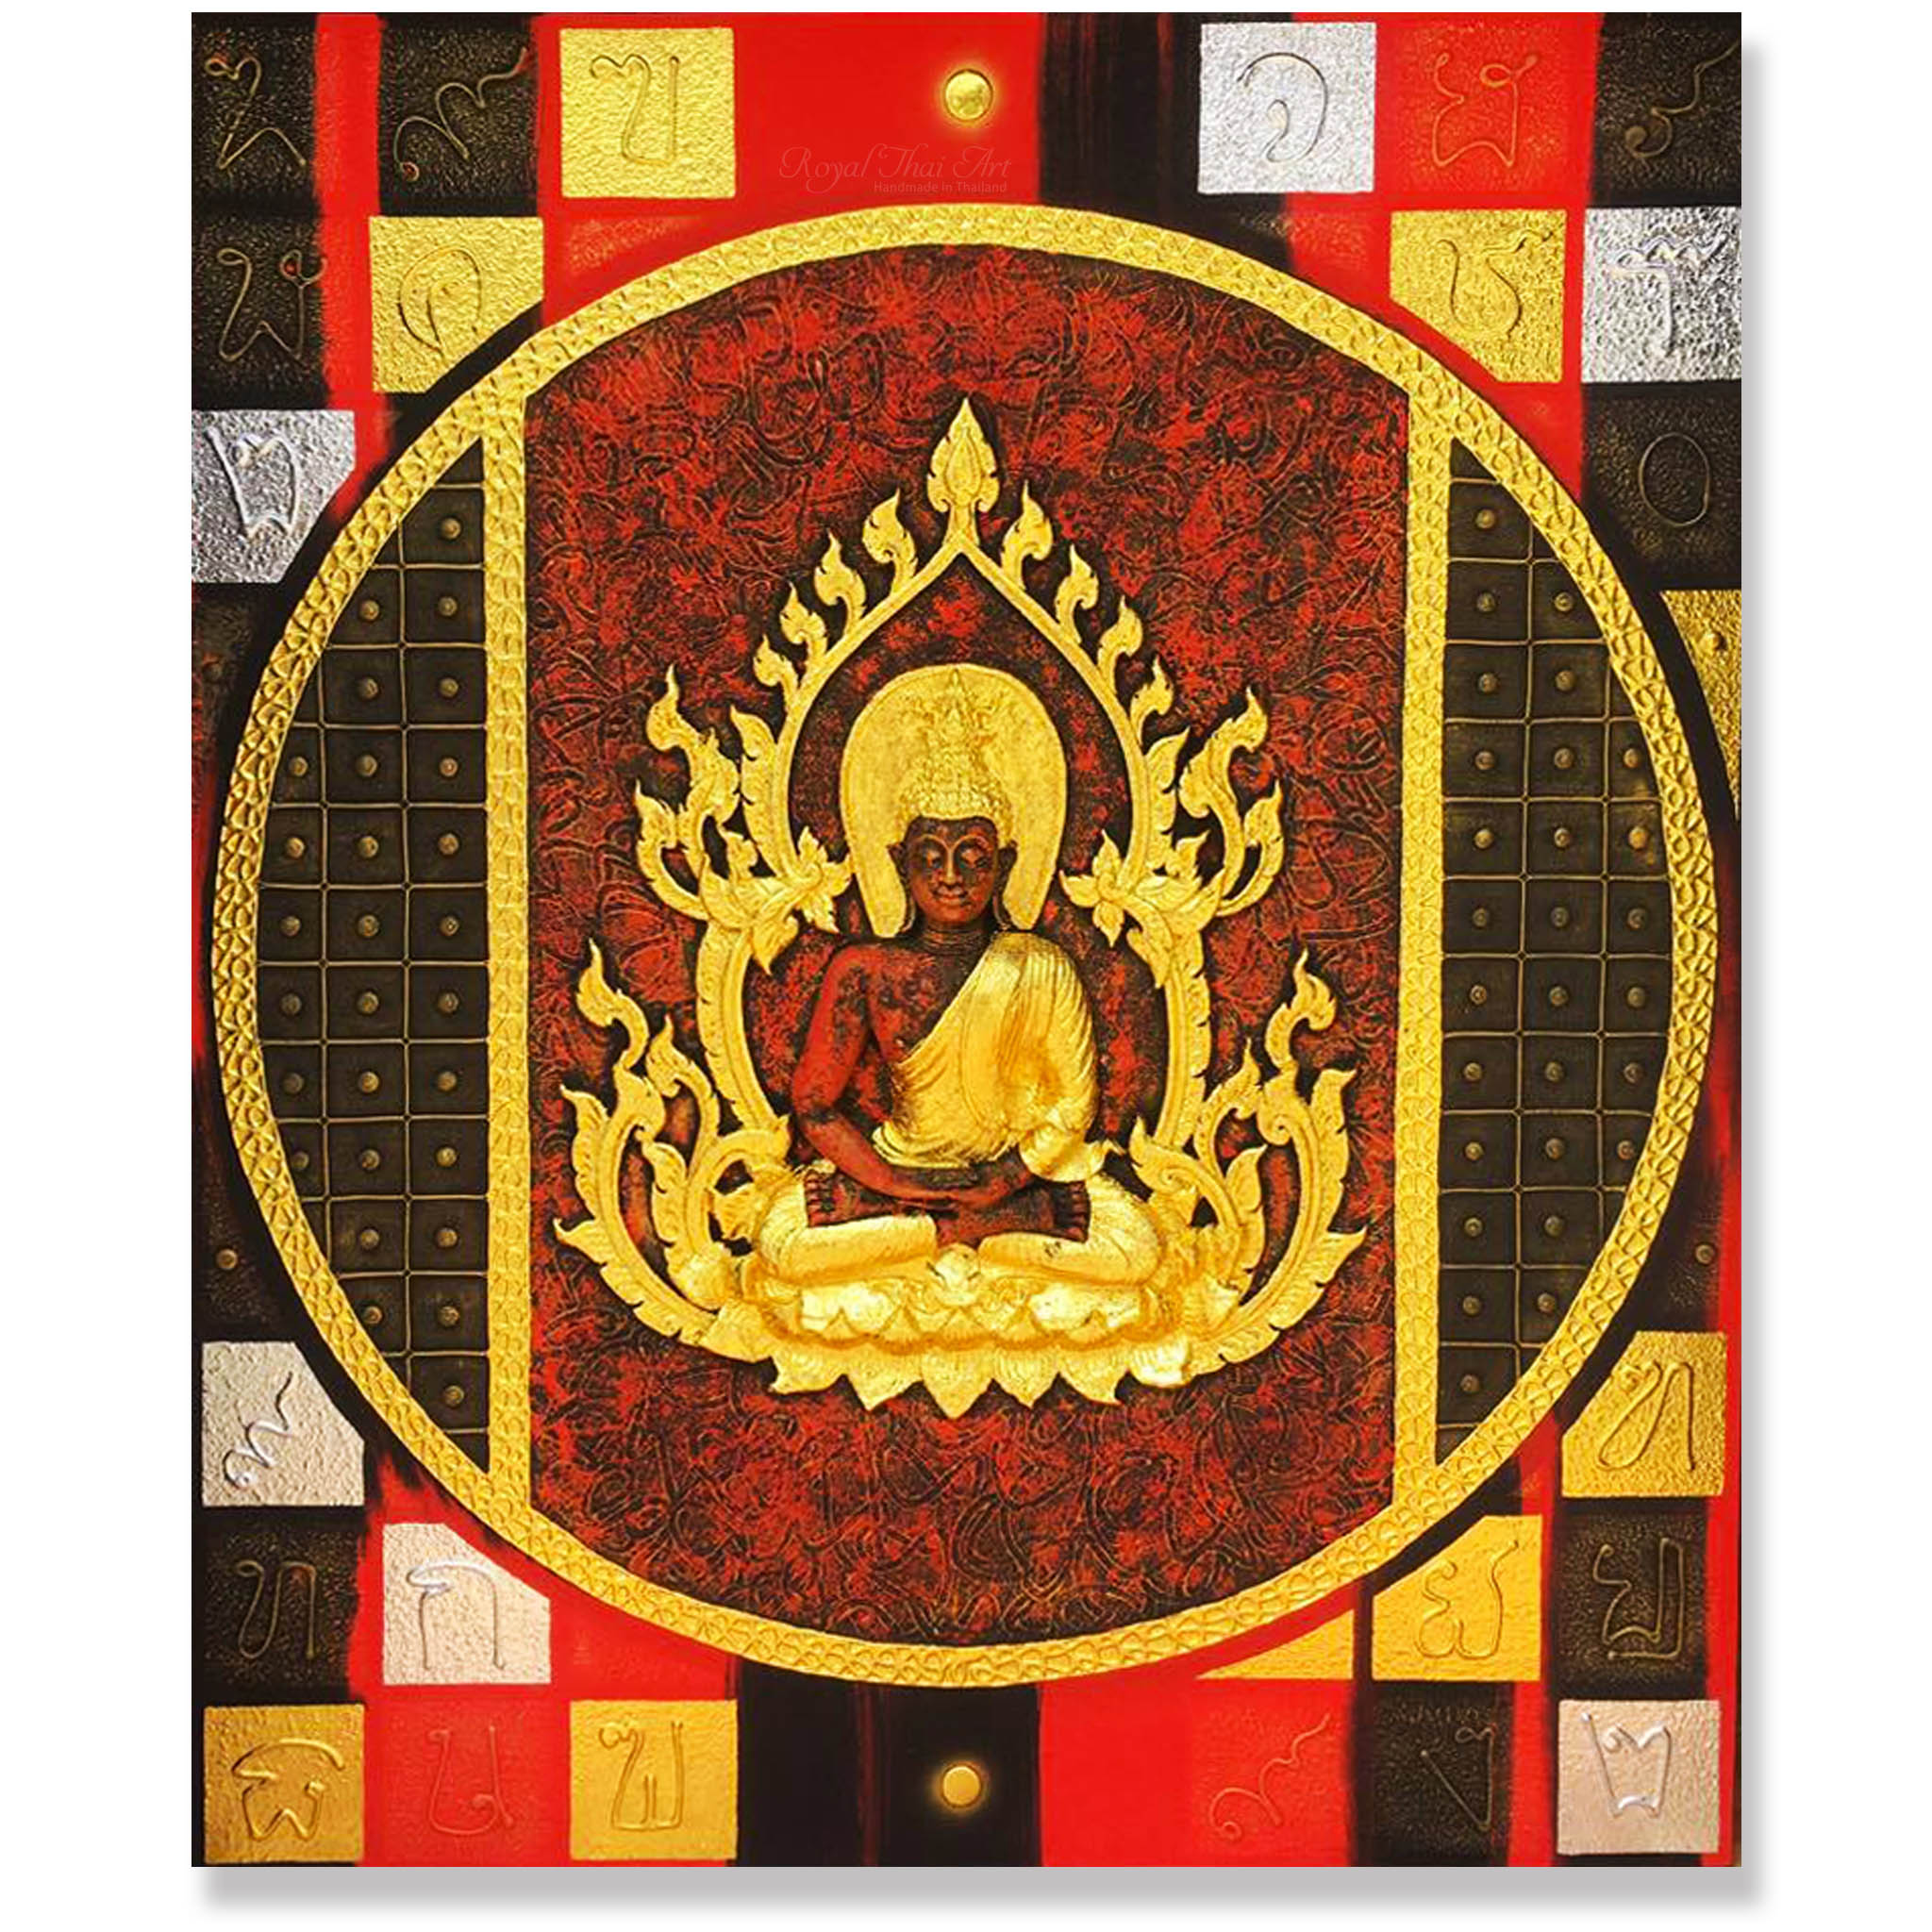 Buddha wall art in 3D acrylic paintings for sale online | Royal Thai Art